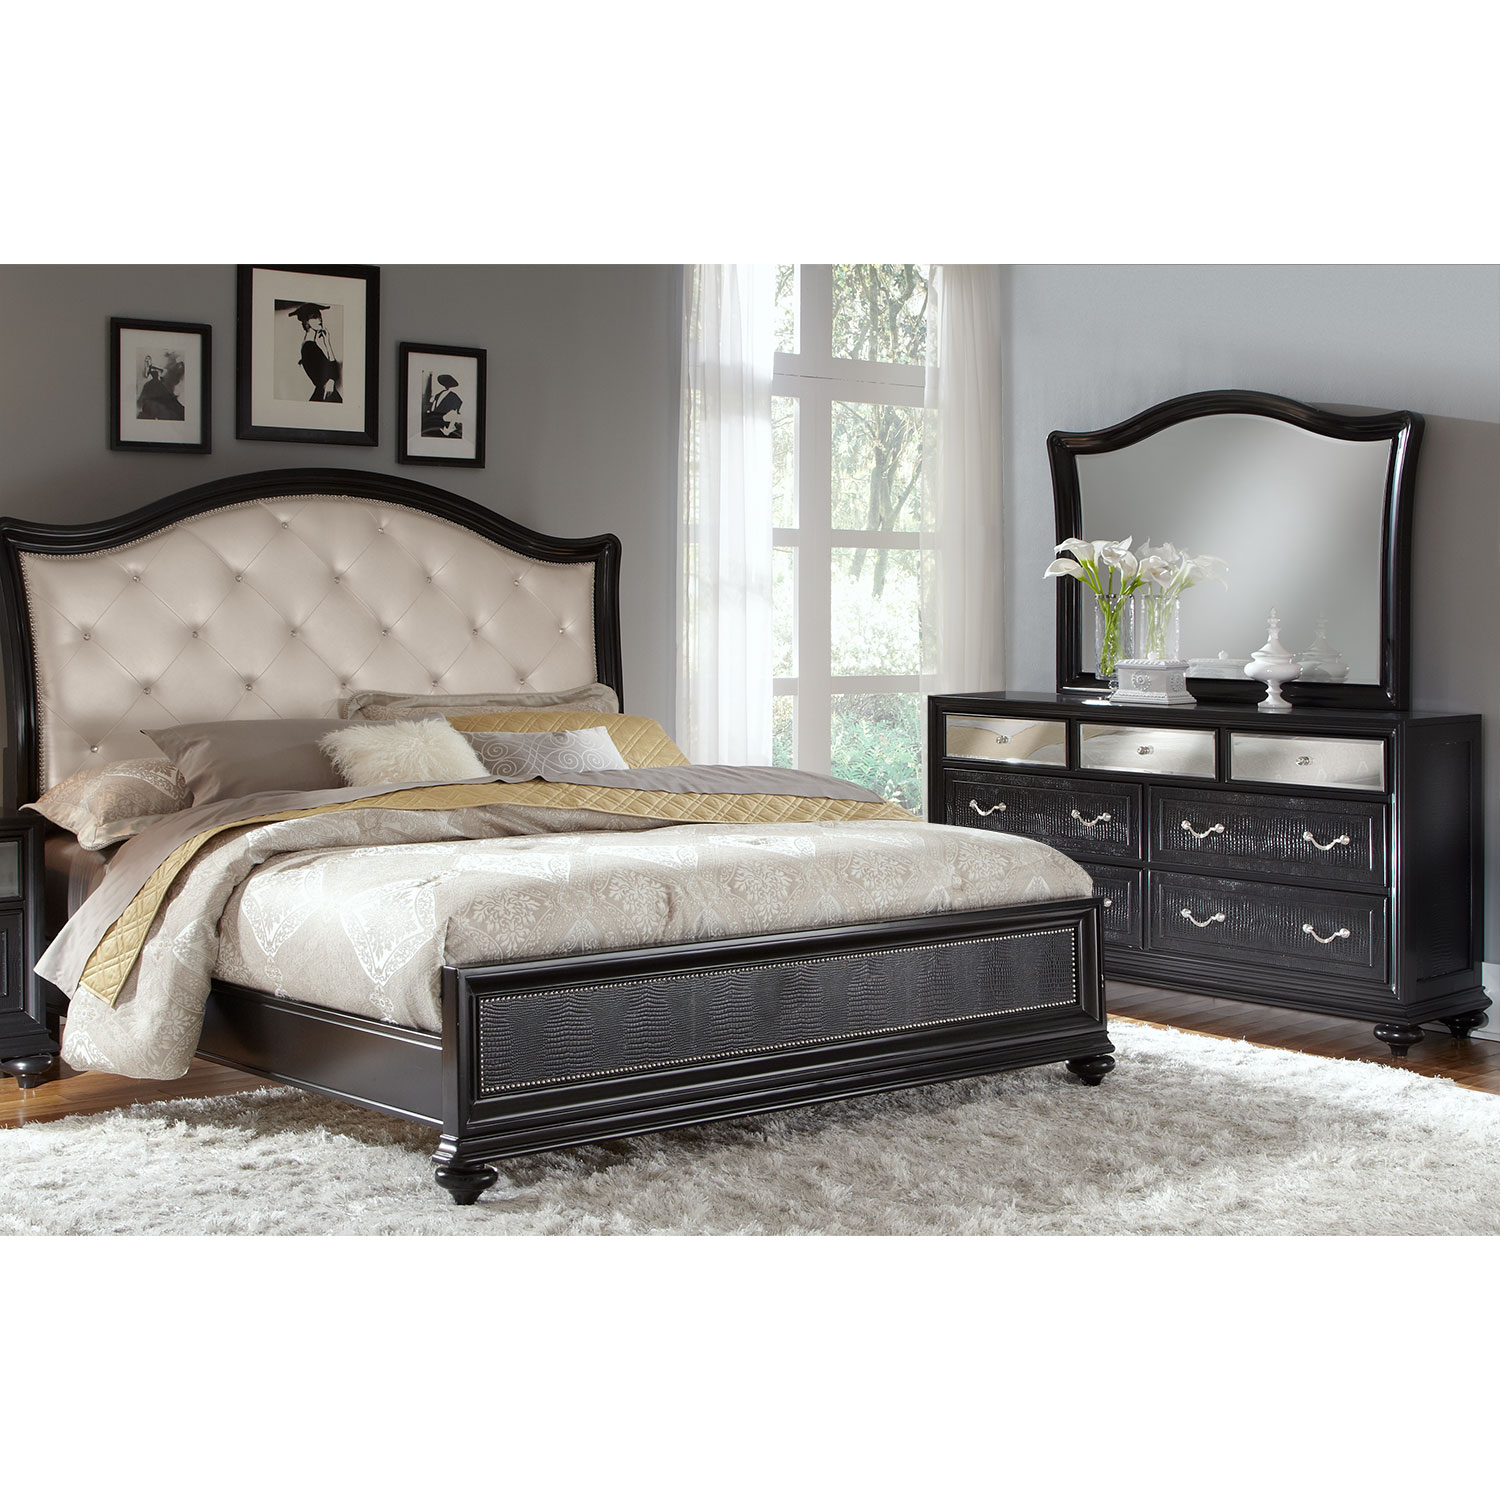 Hover to zoom Marilyn 5 Piece King Bedroom Set  Ebony Value City Furniture